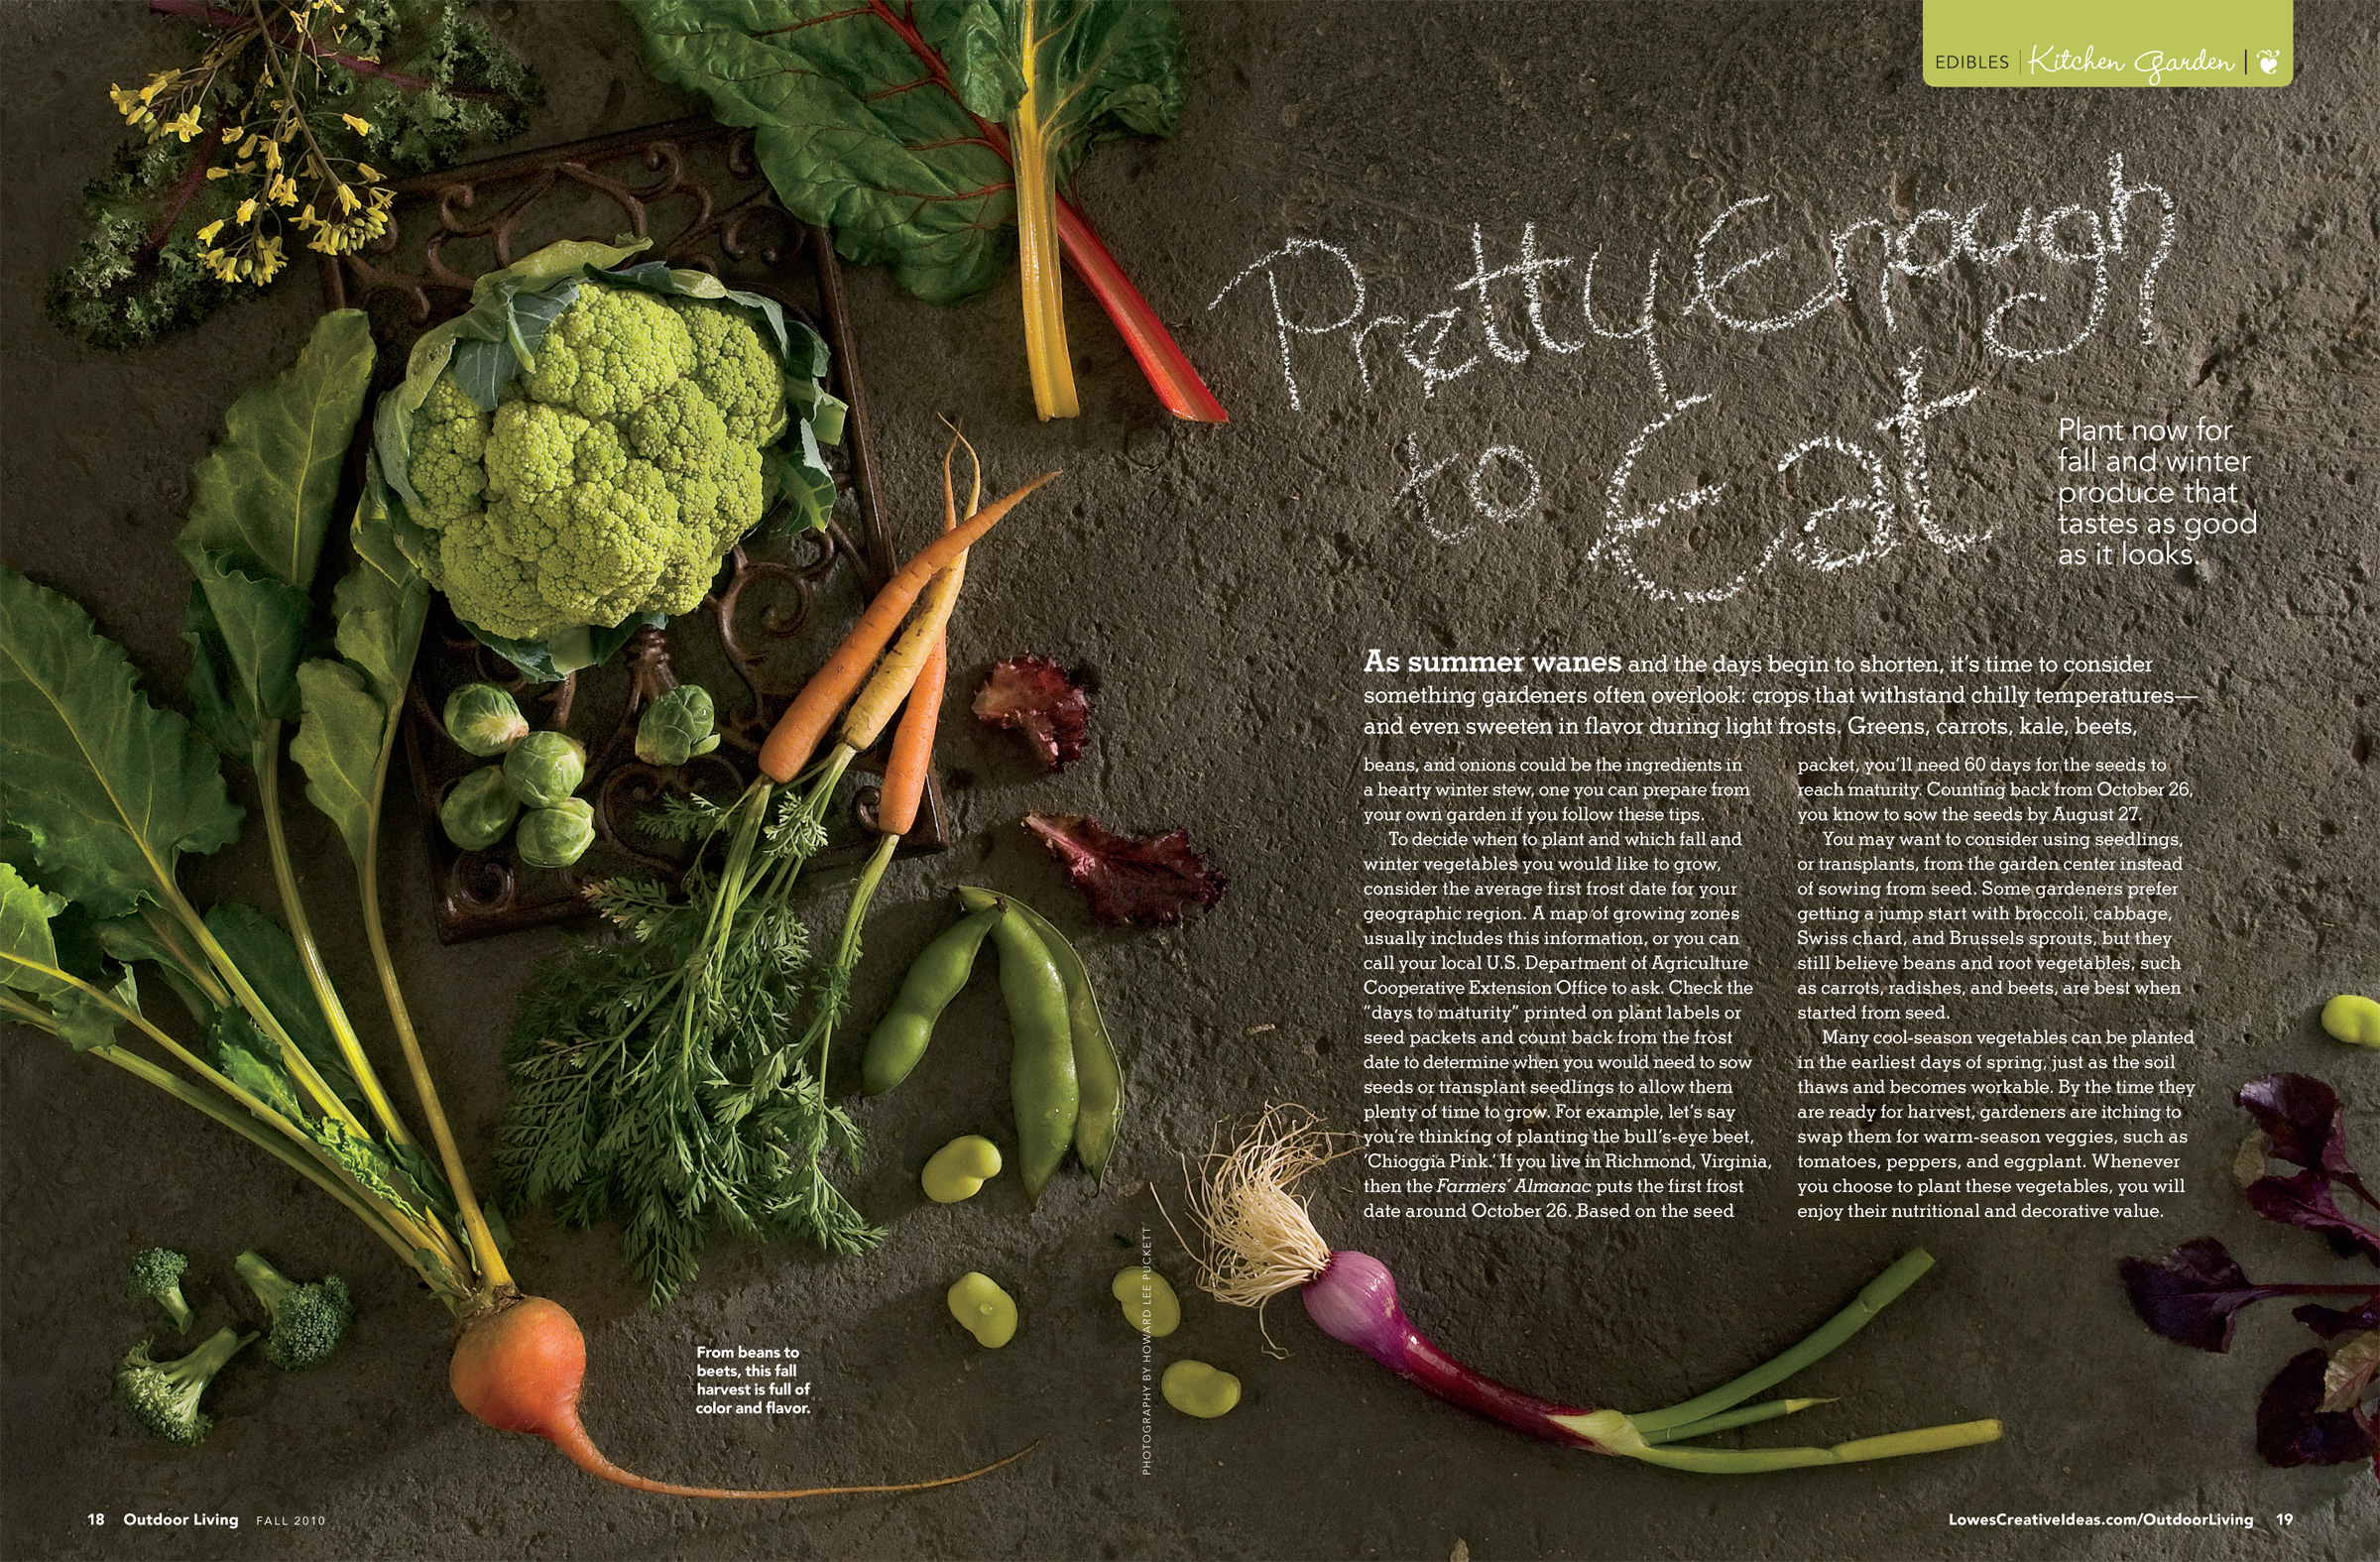 Lowe's Outdoor Living Magazine: Fall 2010 – Vegetables